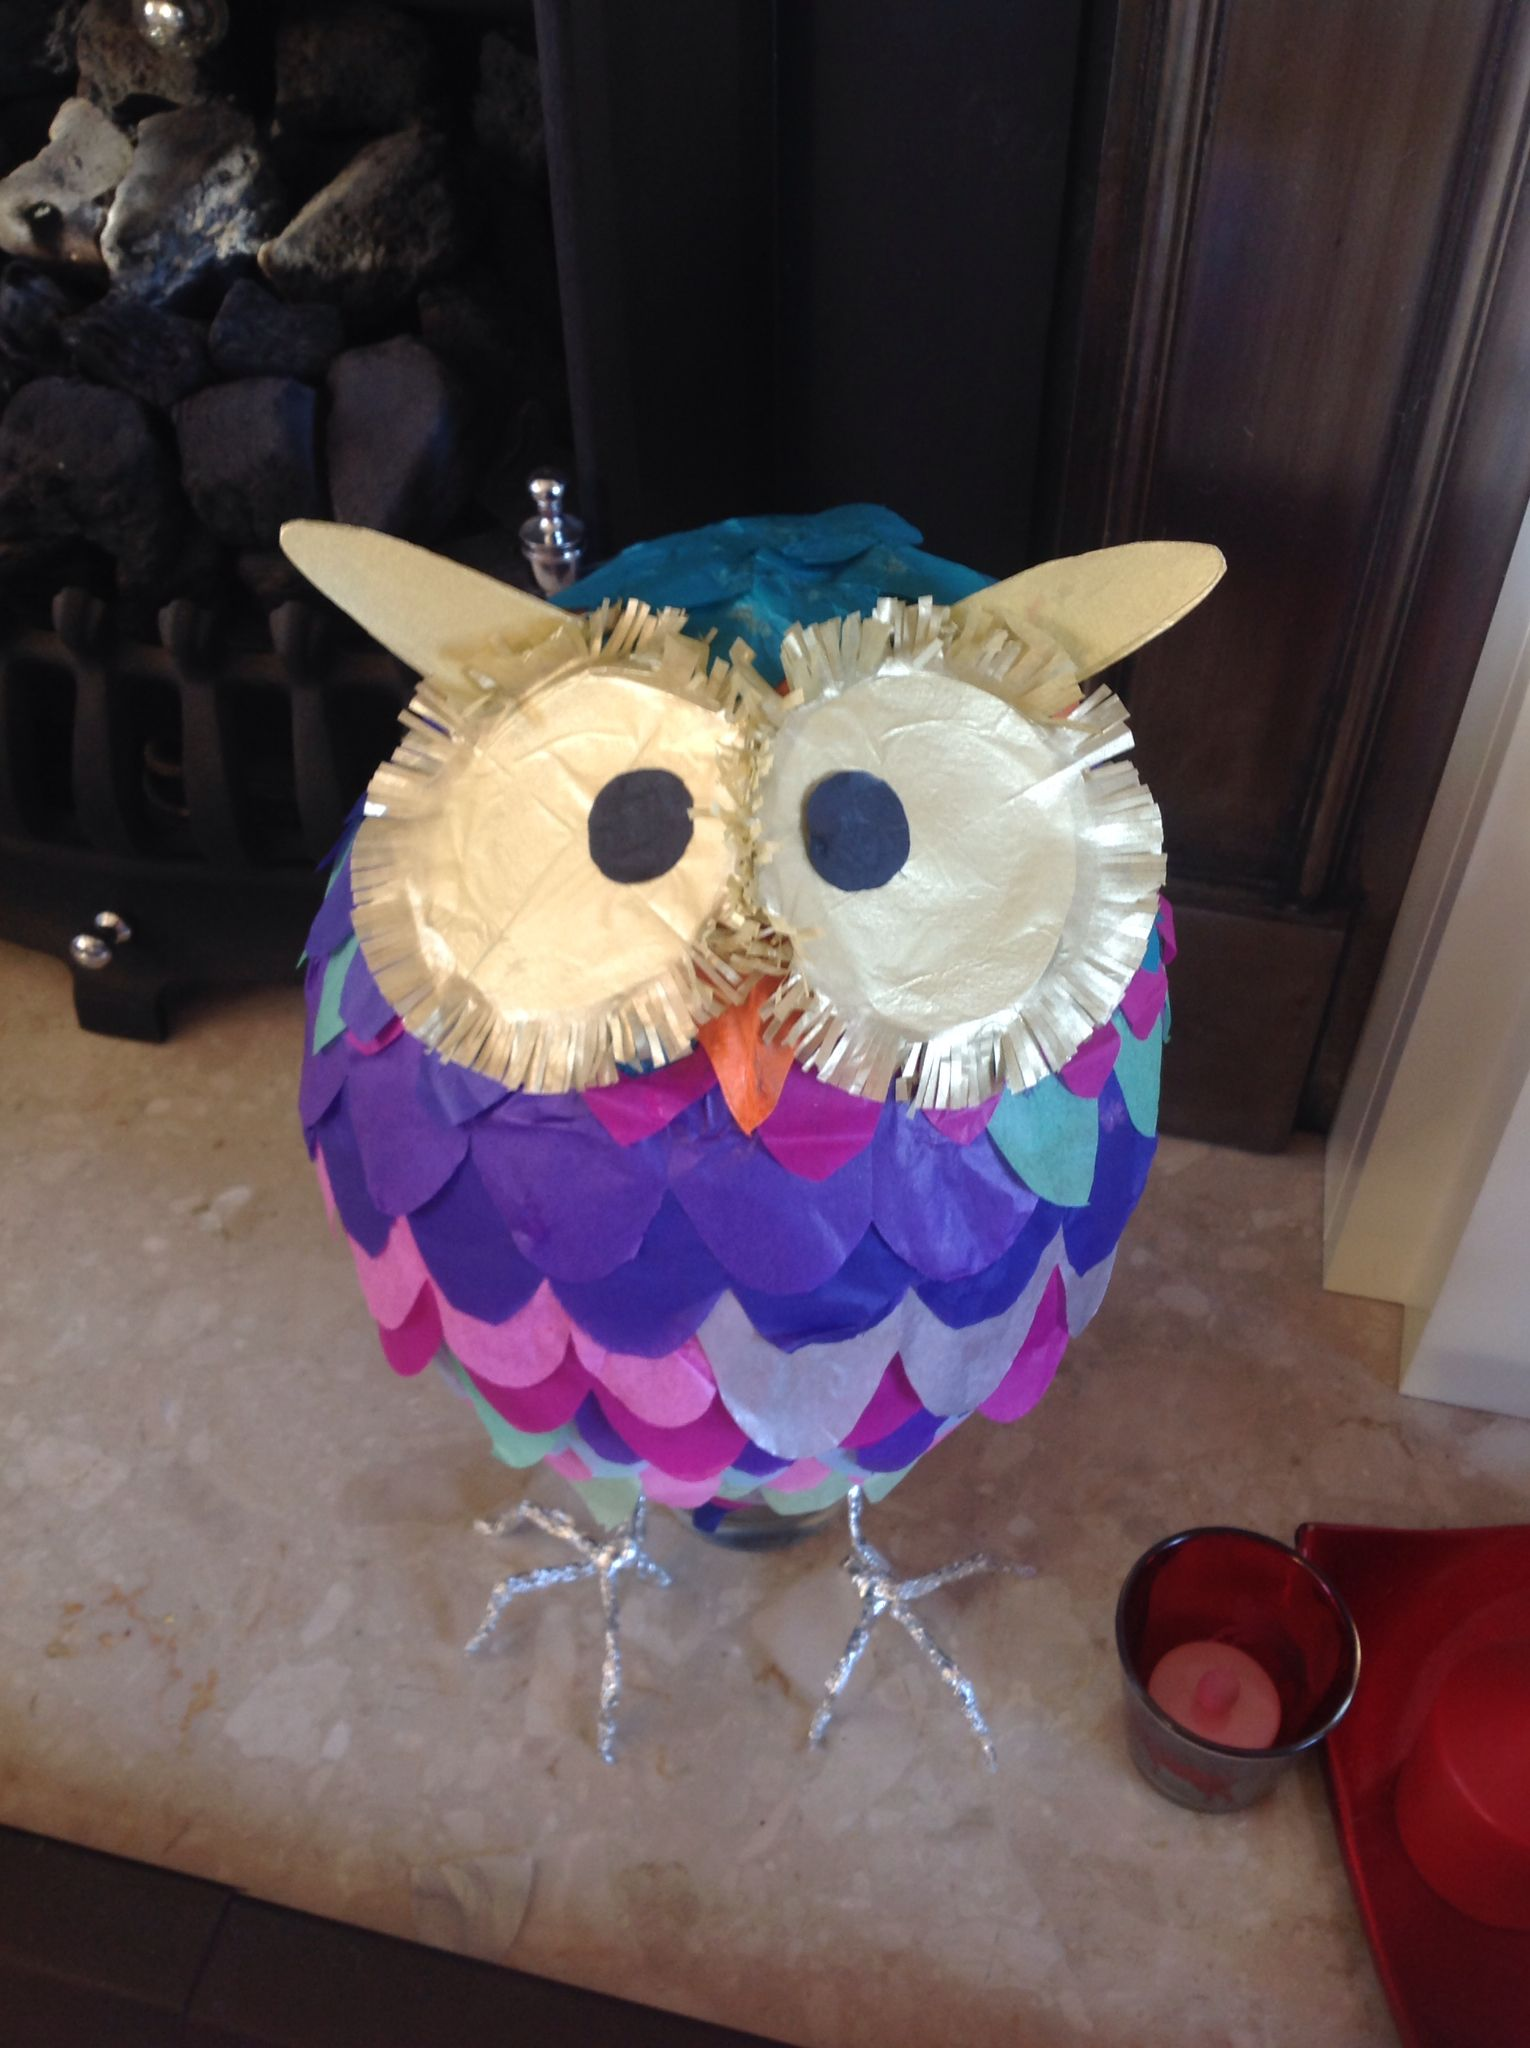 Owl Balloon Decorations Owl Piata Paper Mache Around A Balloon Decorate With Strips Of